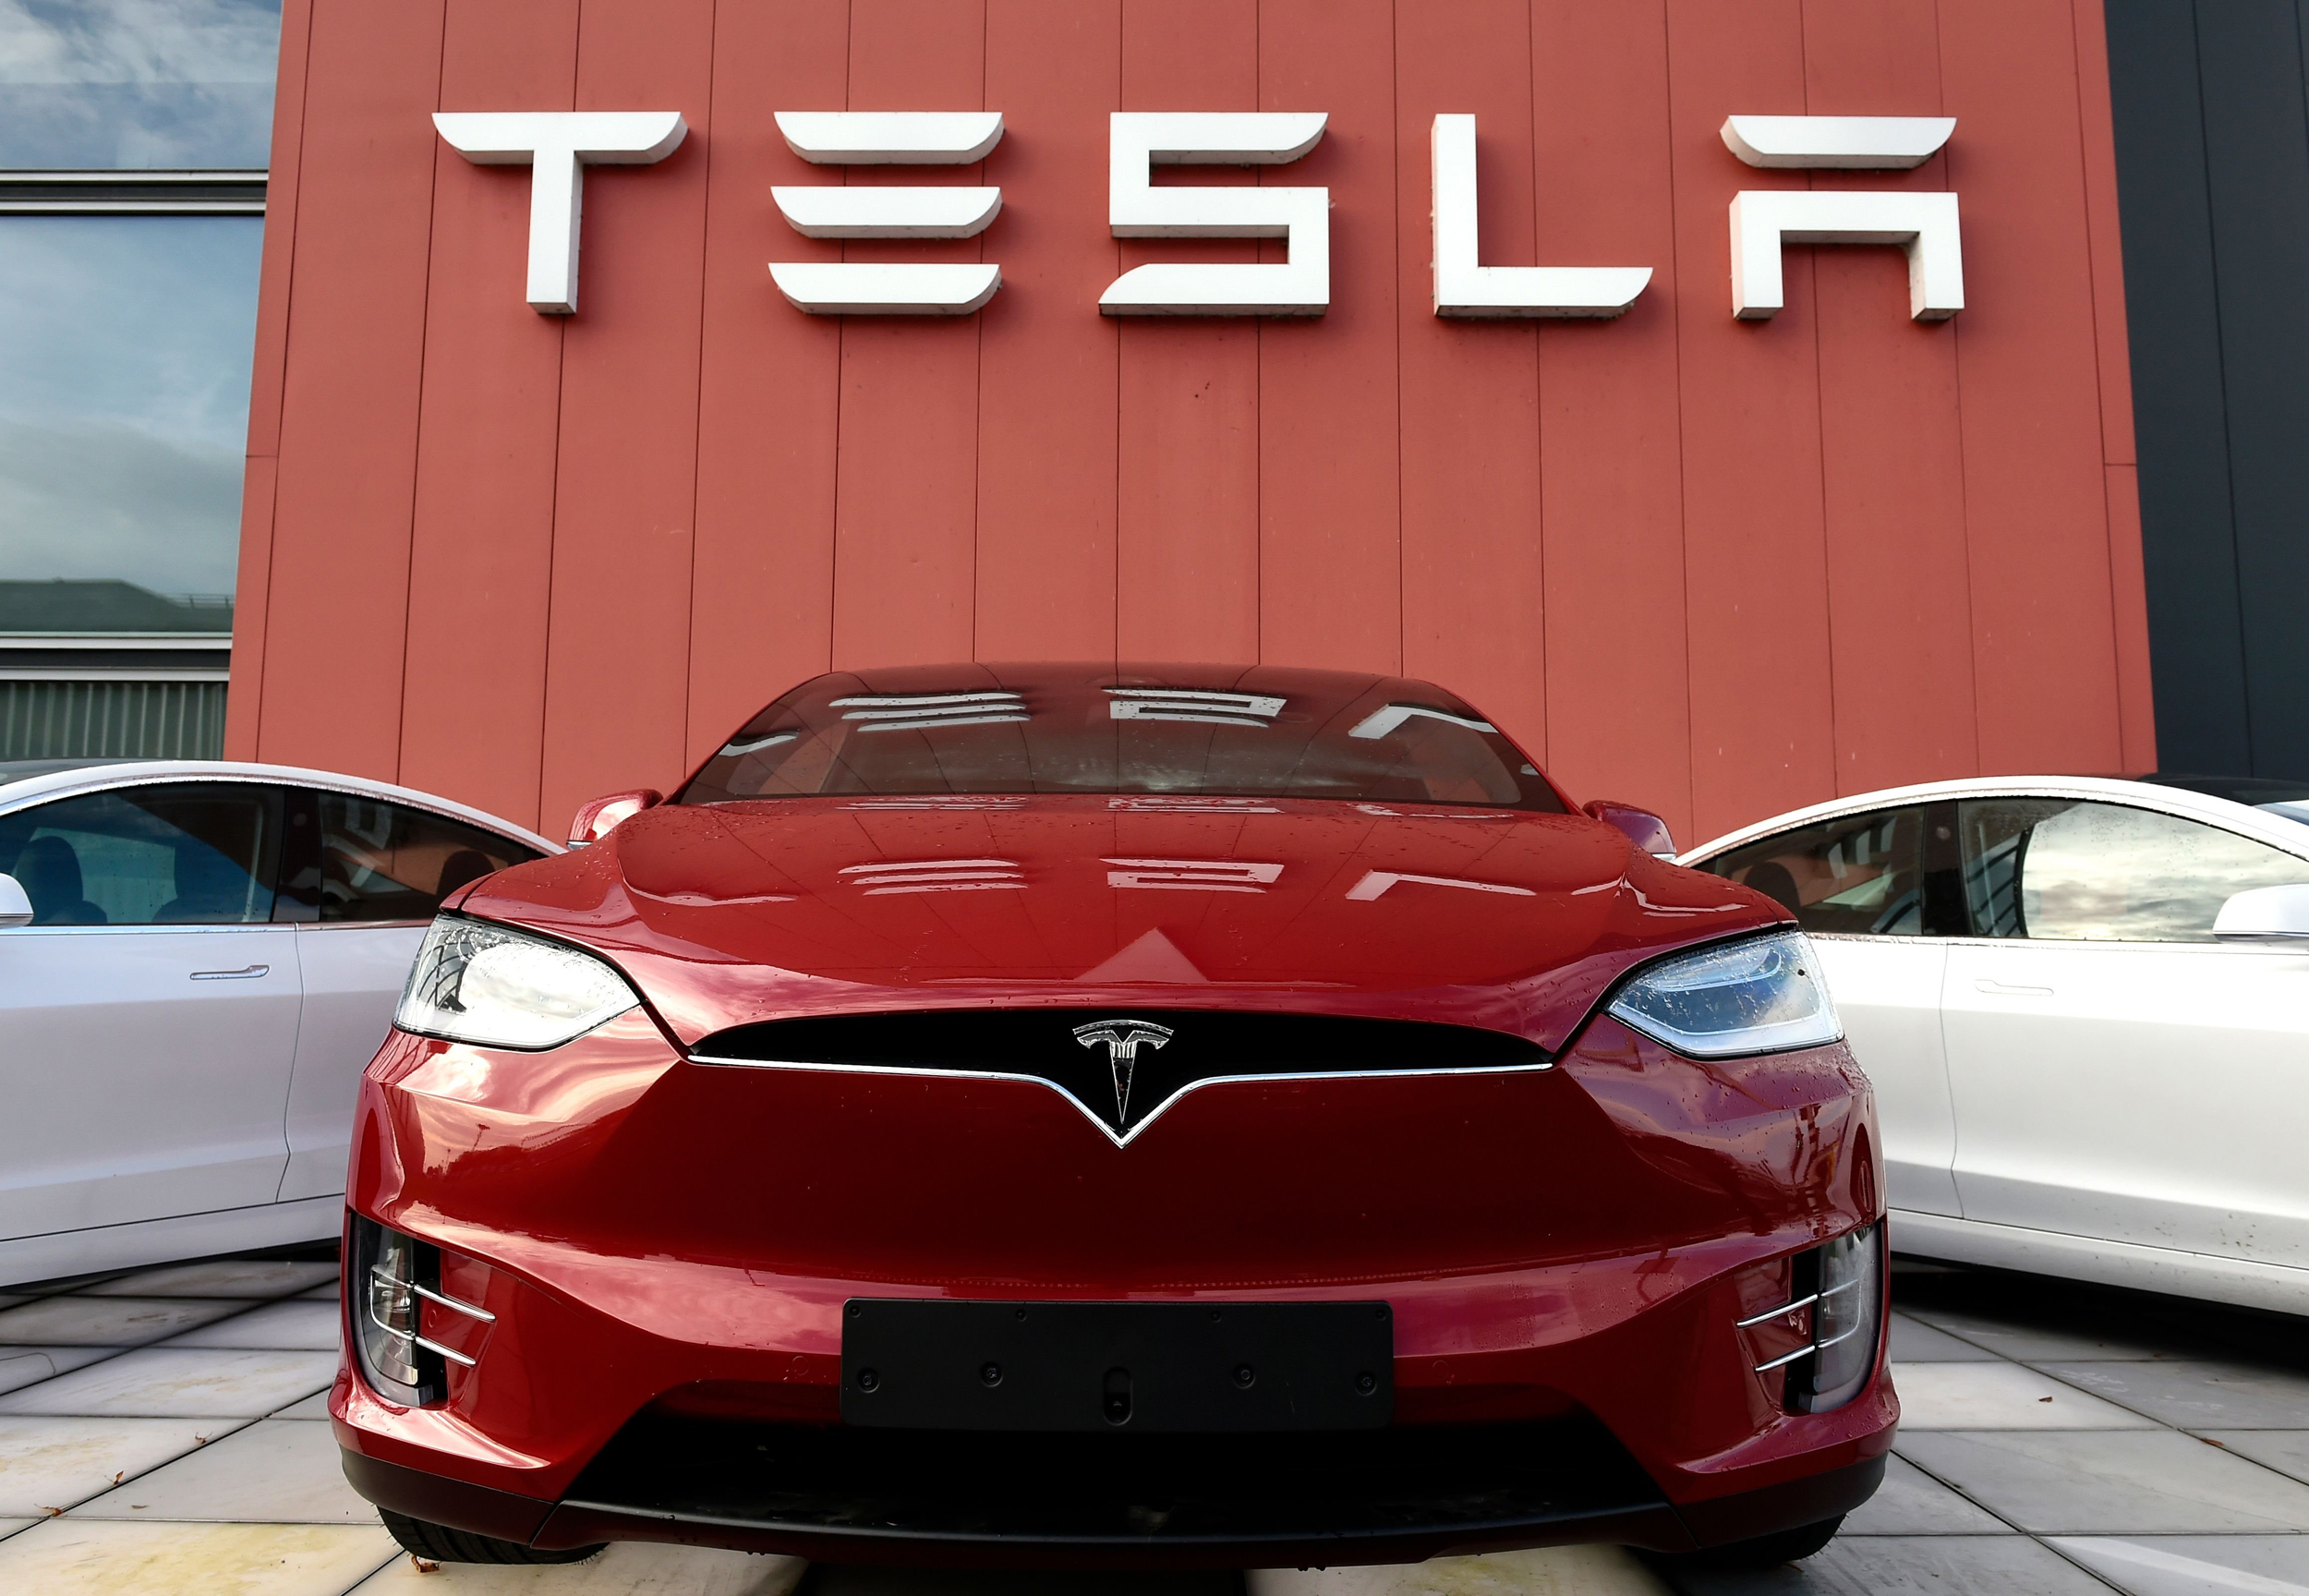 Tesla Reported A Surprise Profit But How Long Can Ceo Elon Musk Stay Ahead